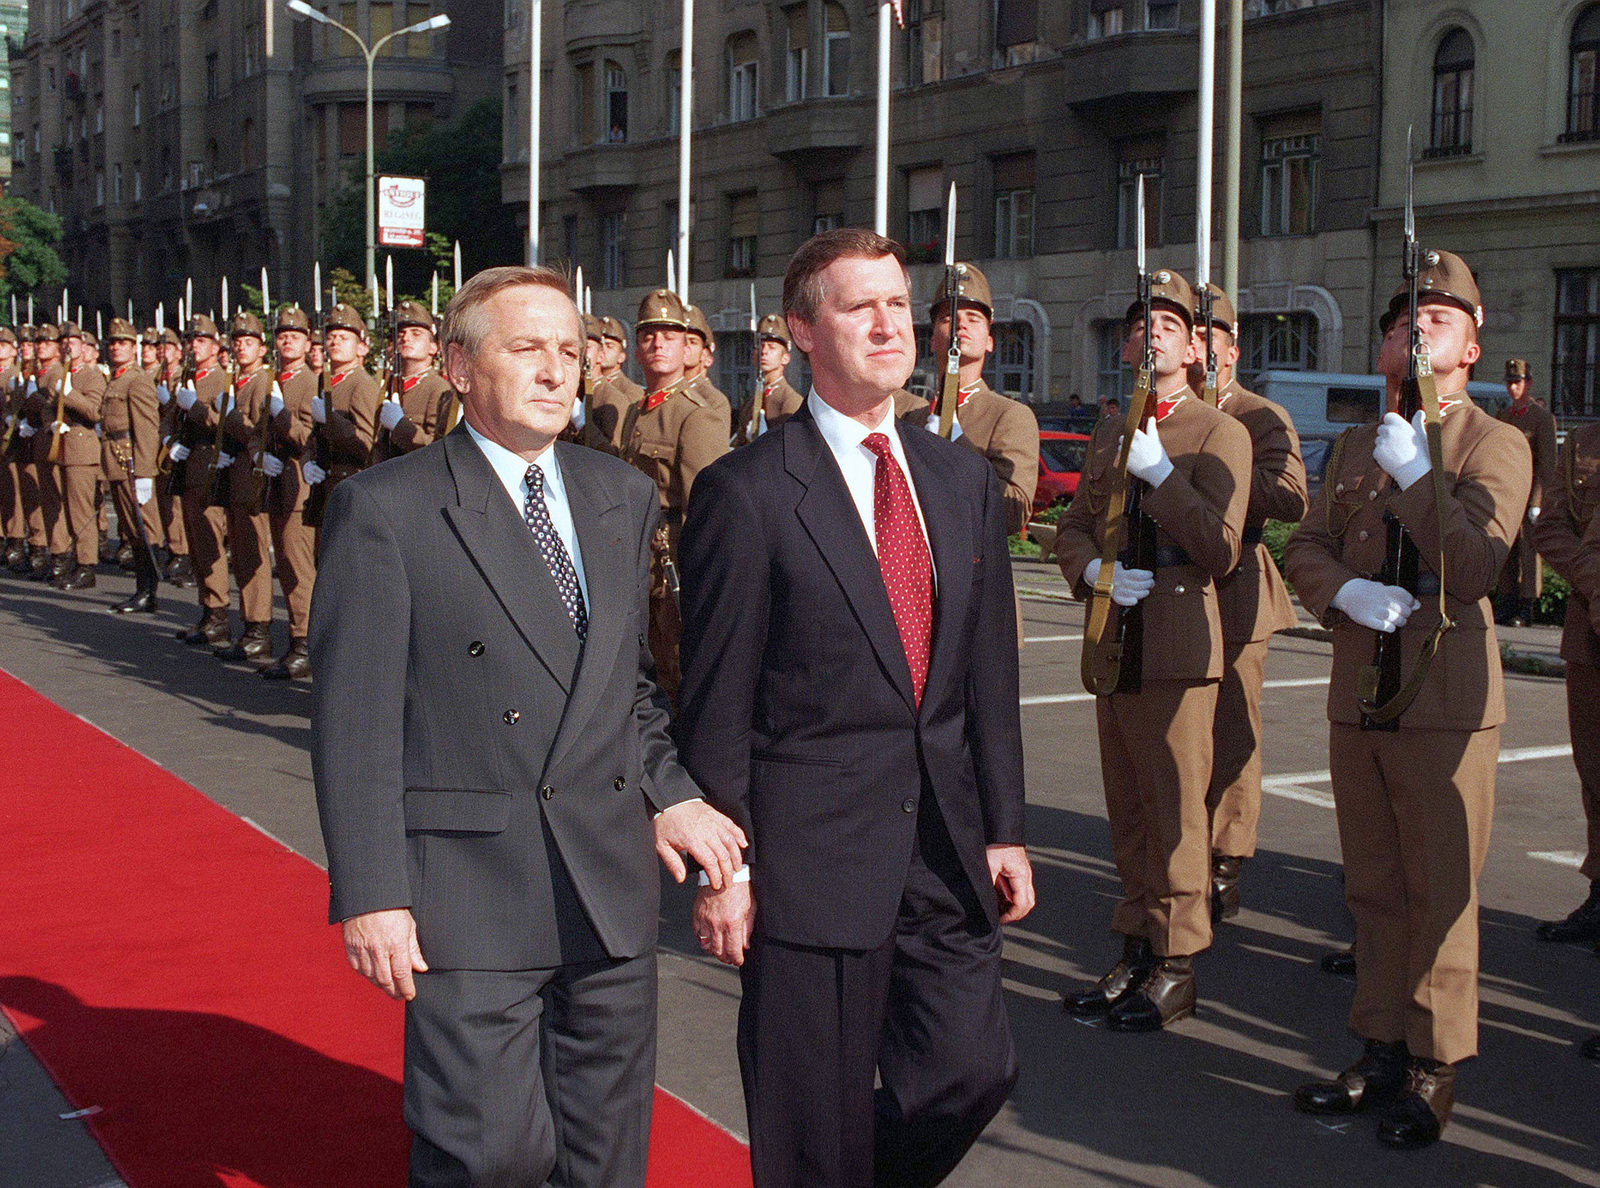 Secretary of Defense William Cohen (right) inspects the honor guard assembled outside the Ministry of Defense Building in Budapest, Hungary, July 10, 1997. Escorting Cohen is Hungarian Defense Minister Gyorgy Keleti (left). Secretary Cohen visited Hungary immediately following the NATO summit in Madrid, Spain, where Hungary, along with Poland and the Czech Republic were offered membership in the Western military alliance. During meetings, Keleti warned Cohen that it could take his nation eight to 10 years to upgrade its Soviet-style military to achieve compatibility with other NATO forces